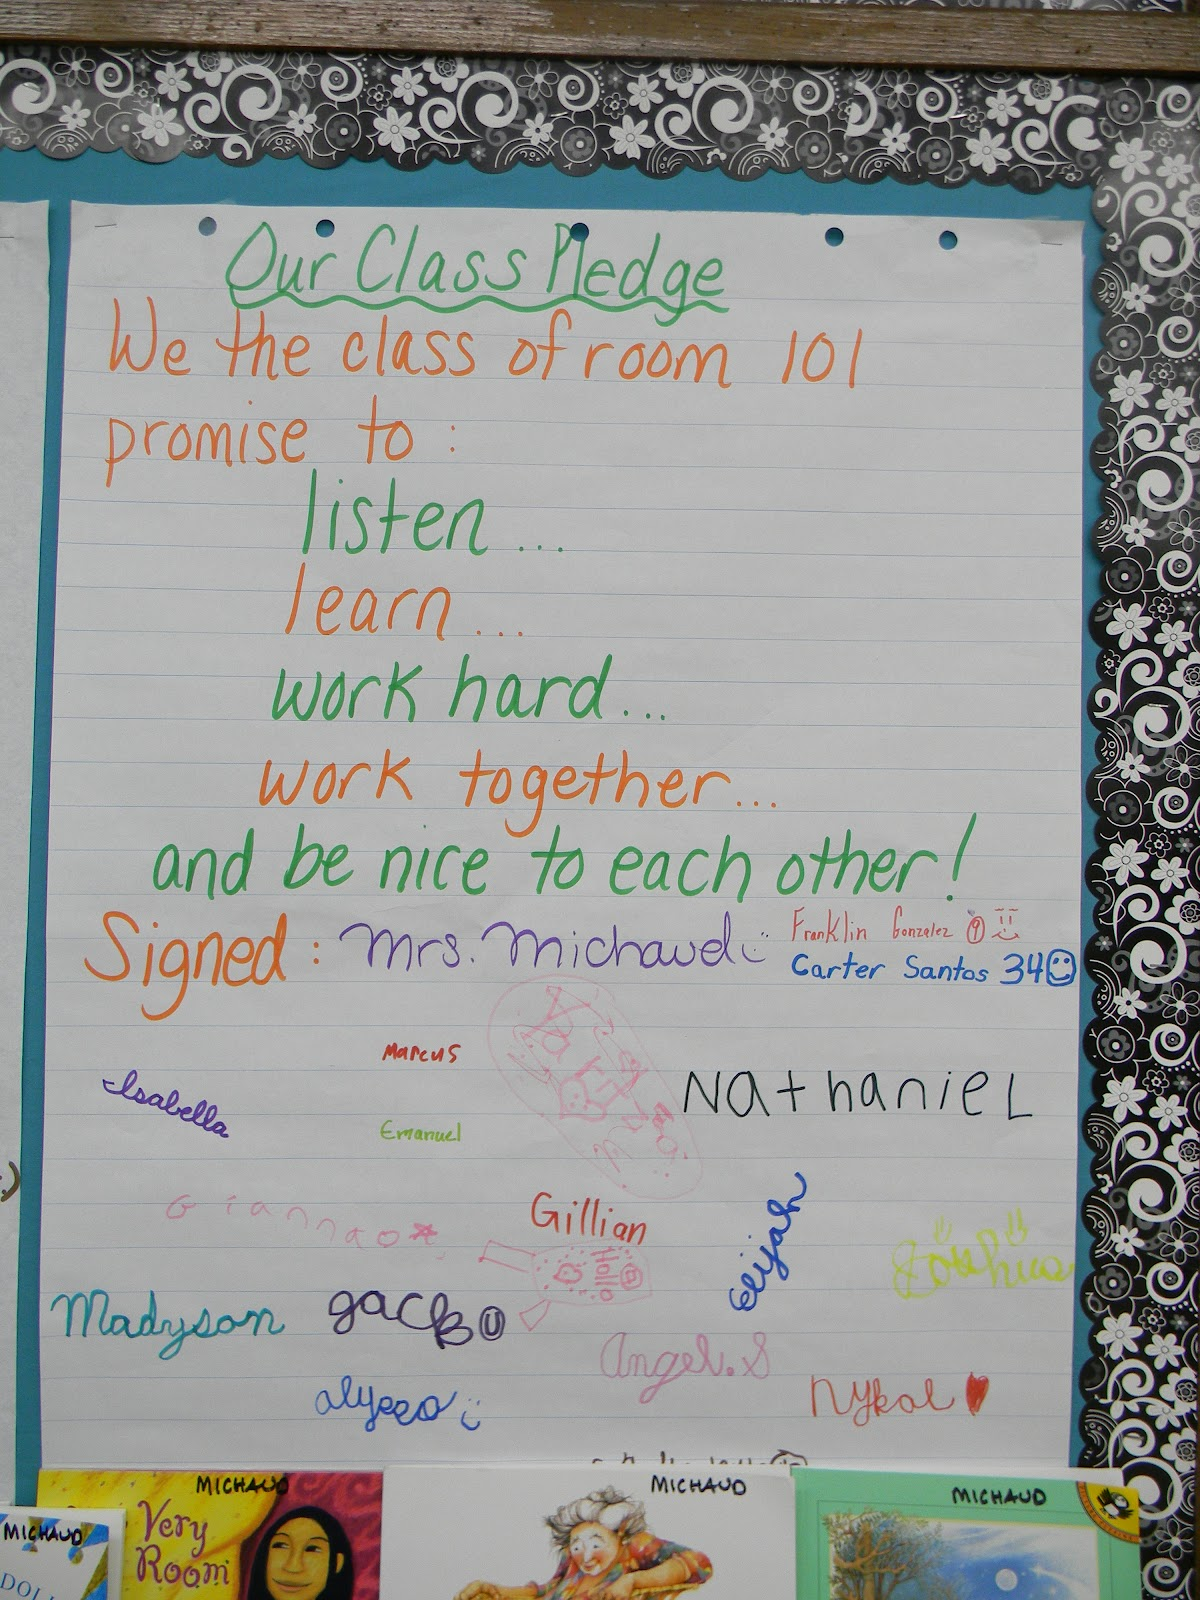 Classroom Pledge Ideas : Can t make this stuff up adventures in teaching hello